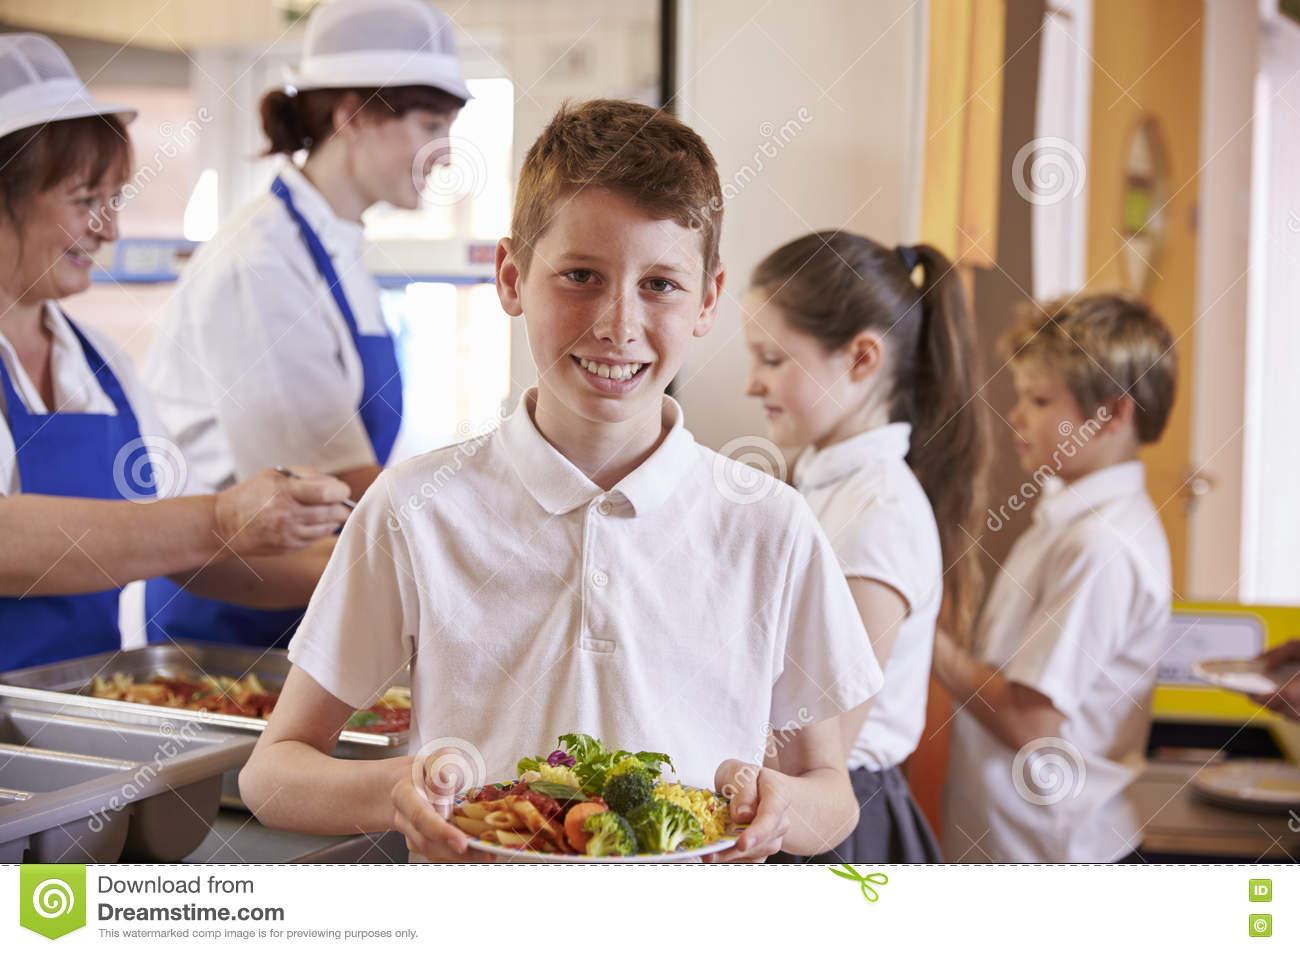 Caucasian schoolboy holds plate of food in school cafeteria